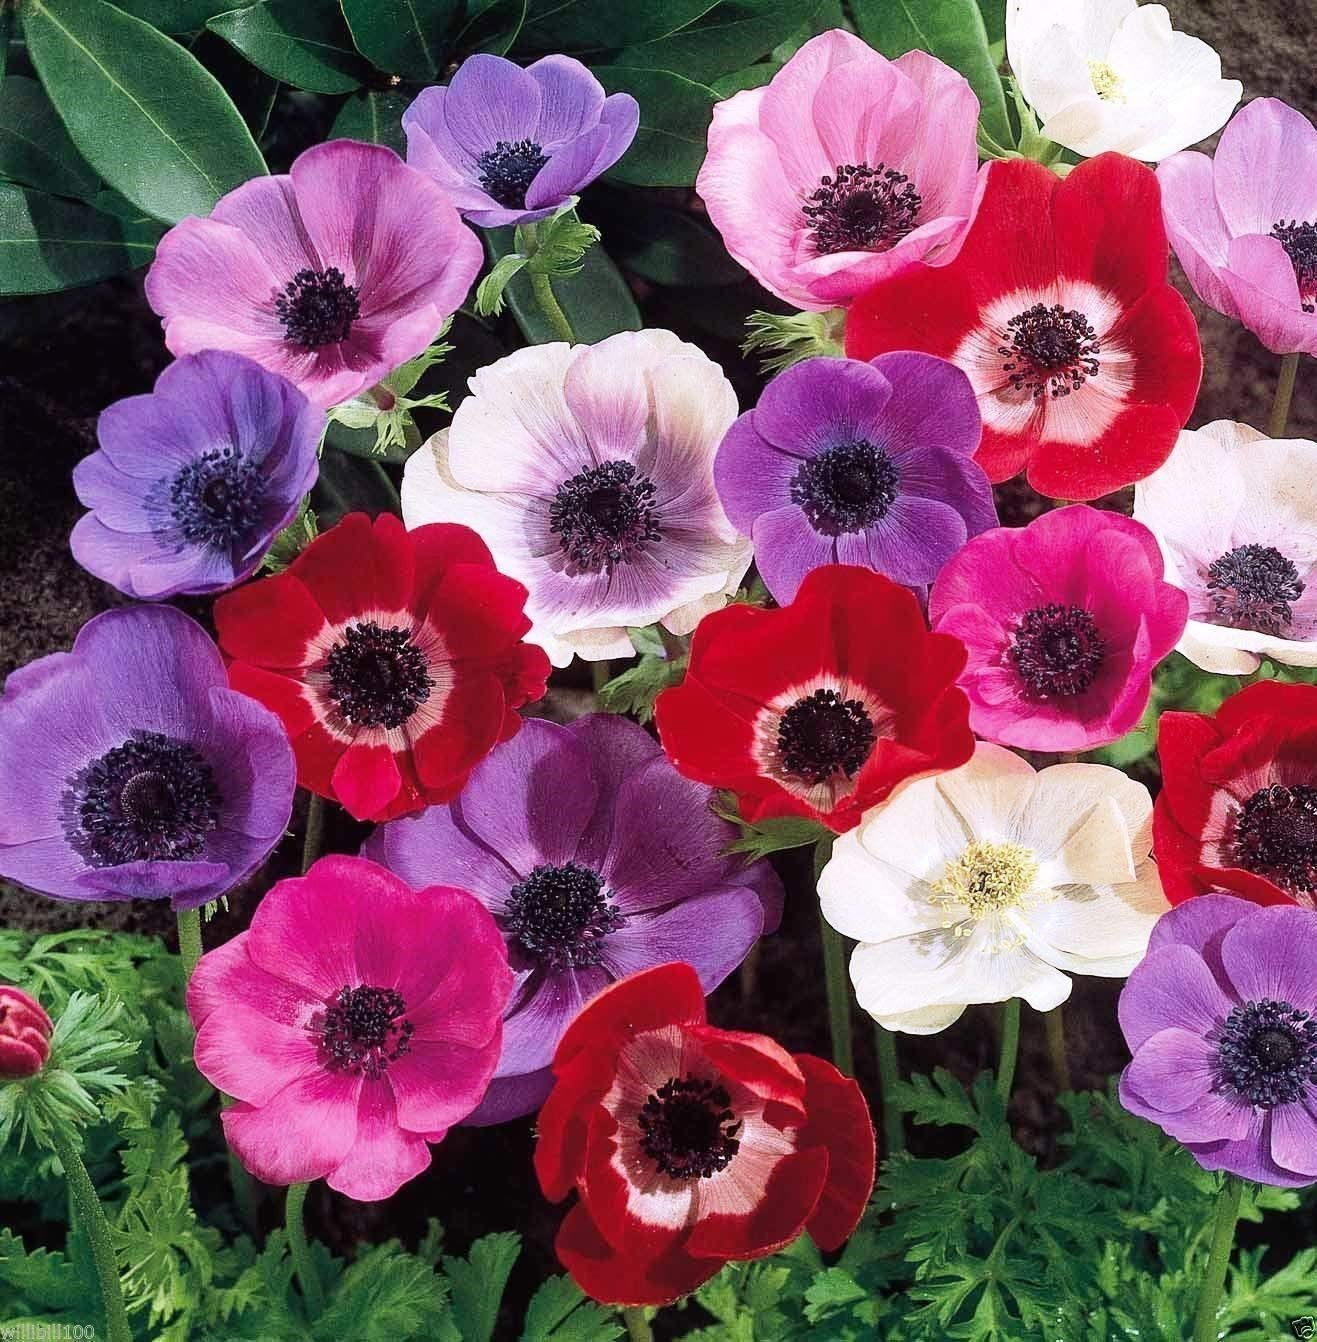 Amazon Com 15 Mixed Color Anemone Bulbs Perennial Flowering